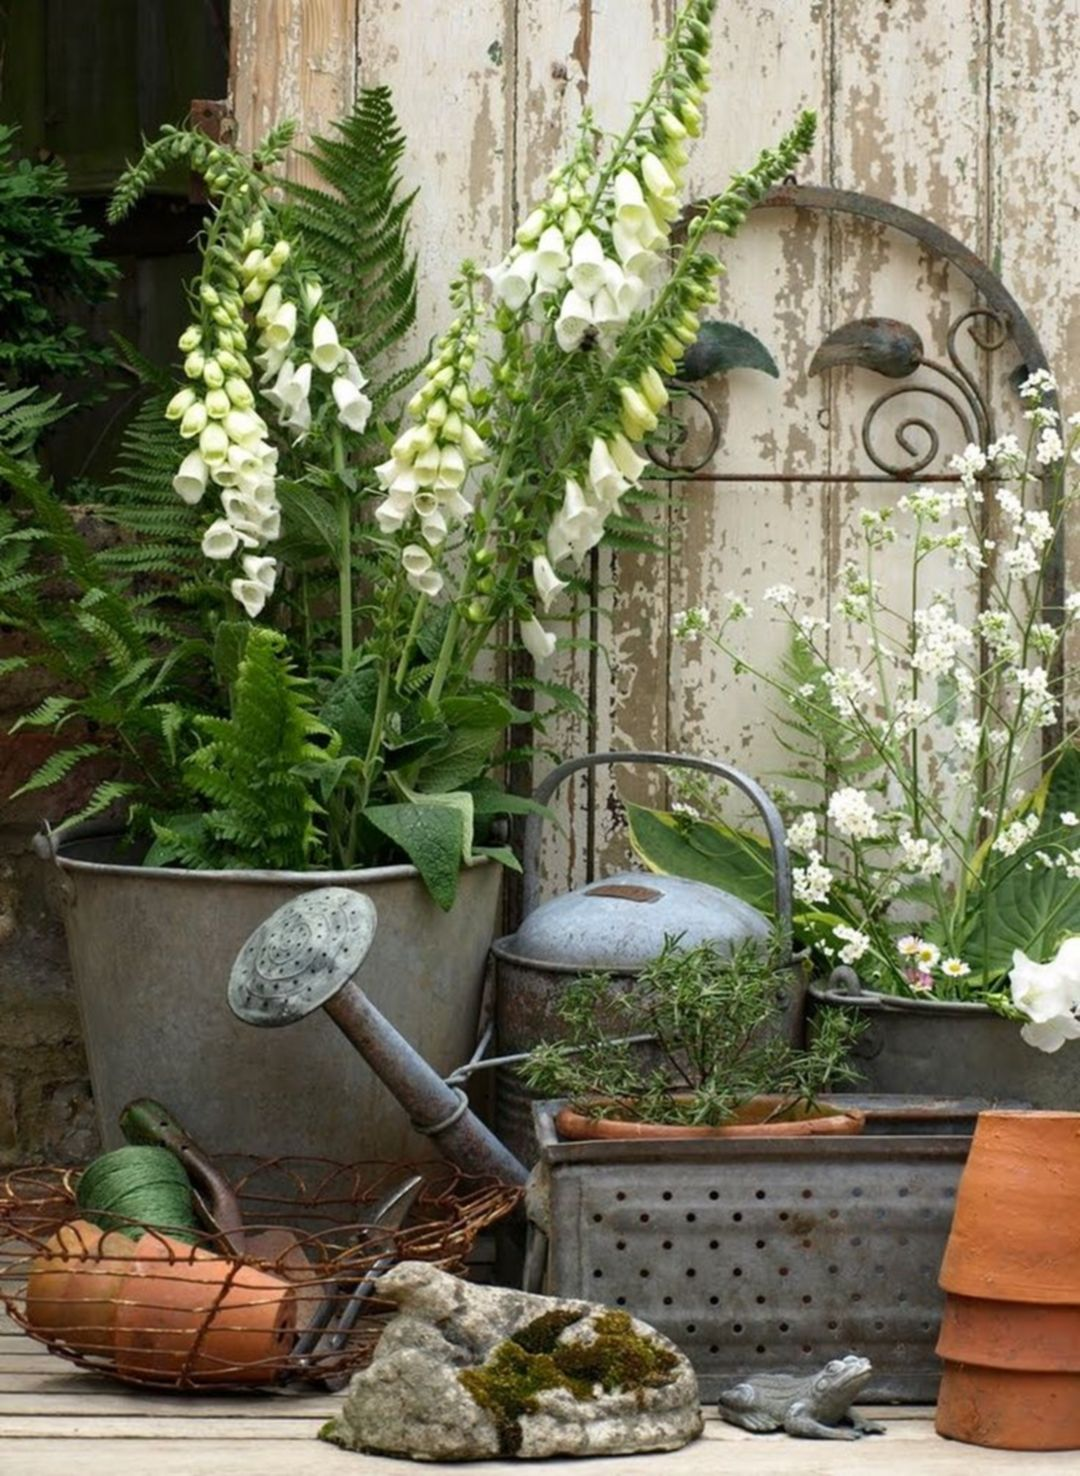 30 Wonderful Vintage Garden Decor Ideas For Amazing Garden ...